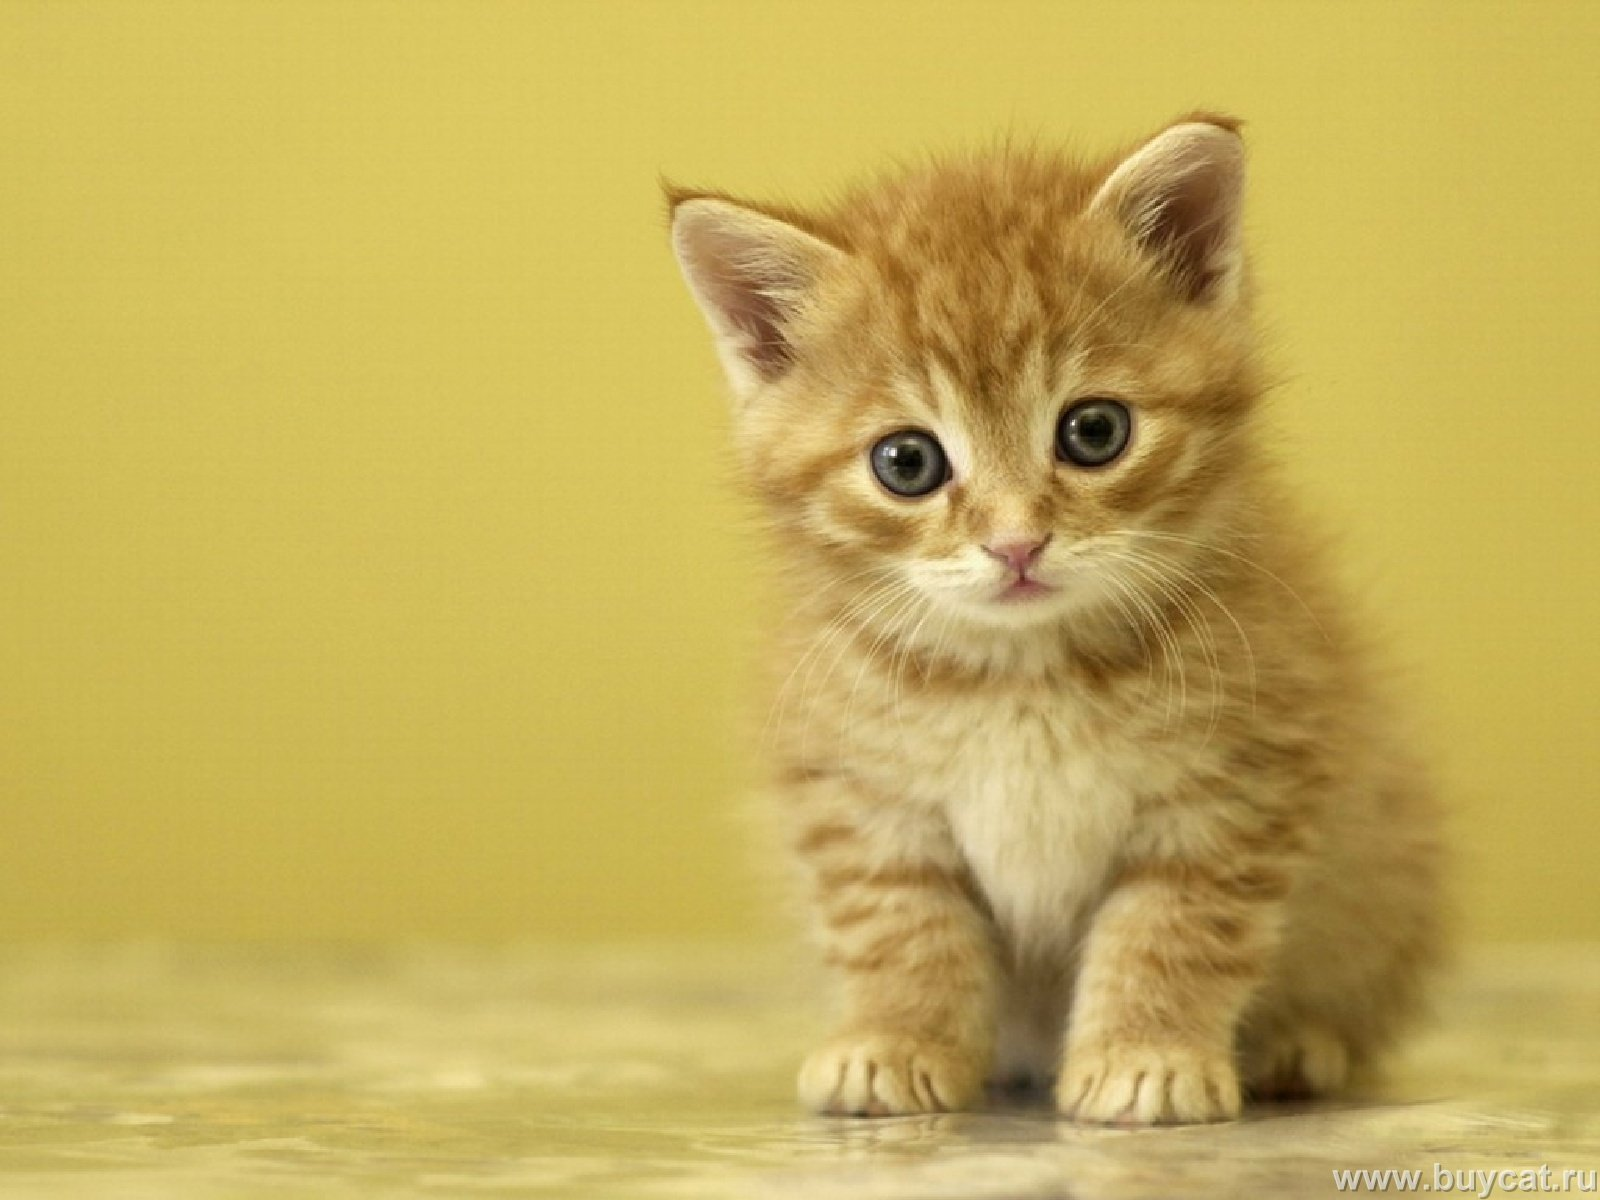 Funny cats wallpaper | Amazing Wallpapers